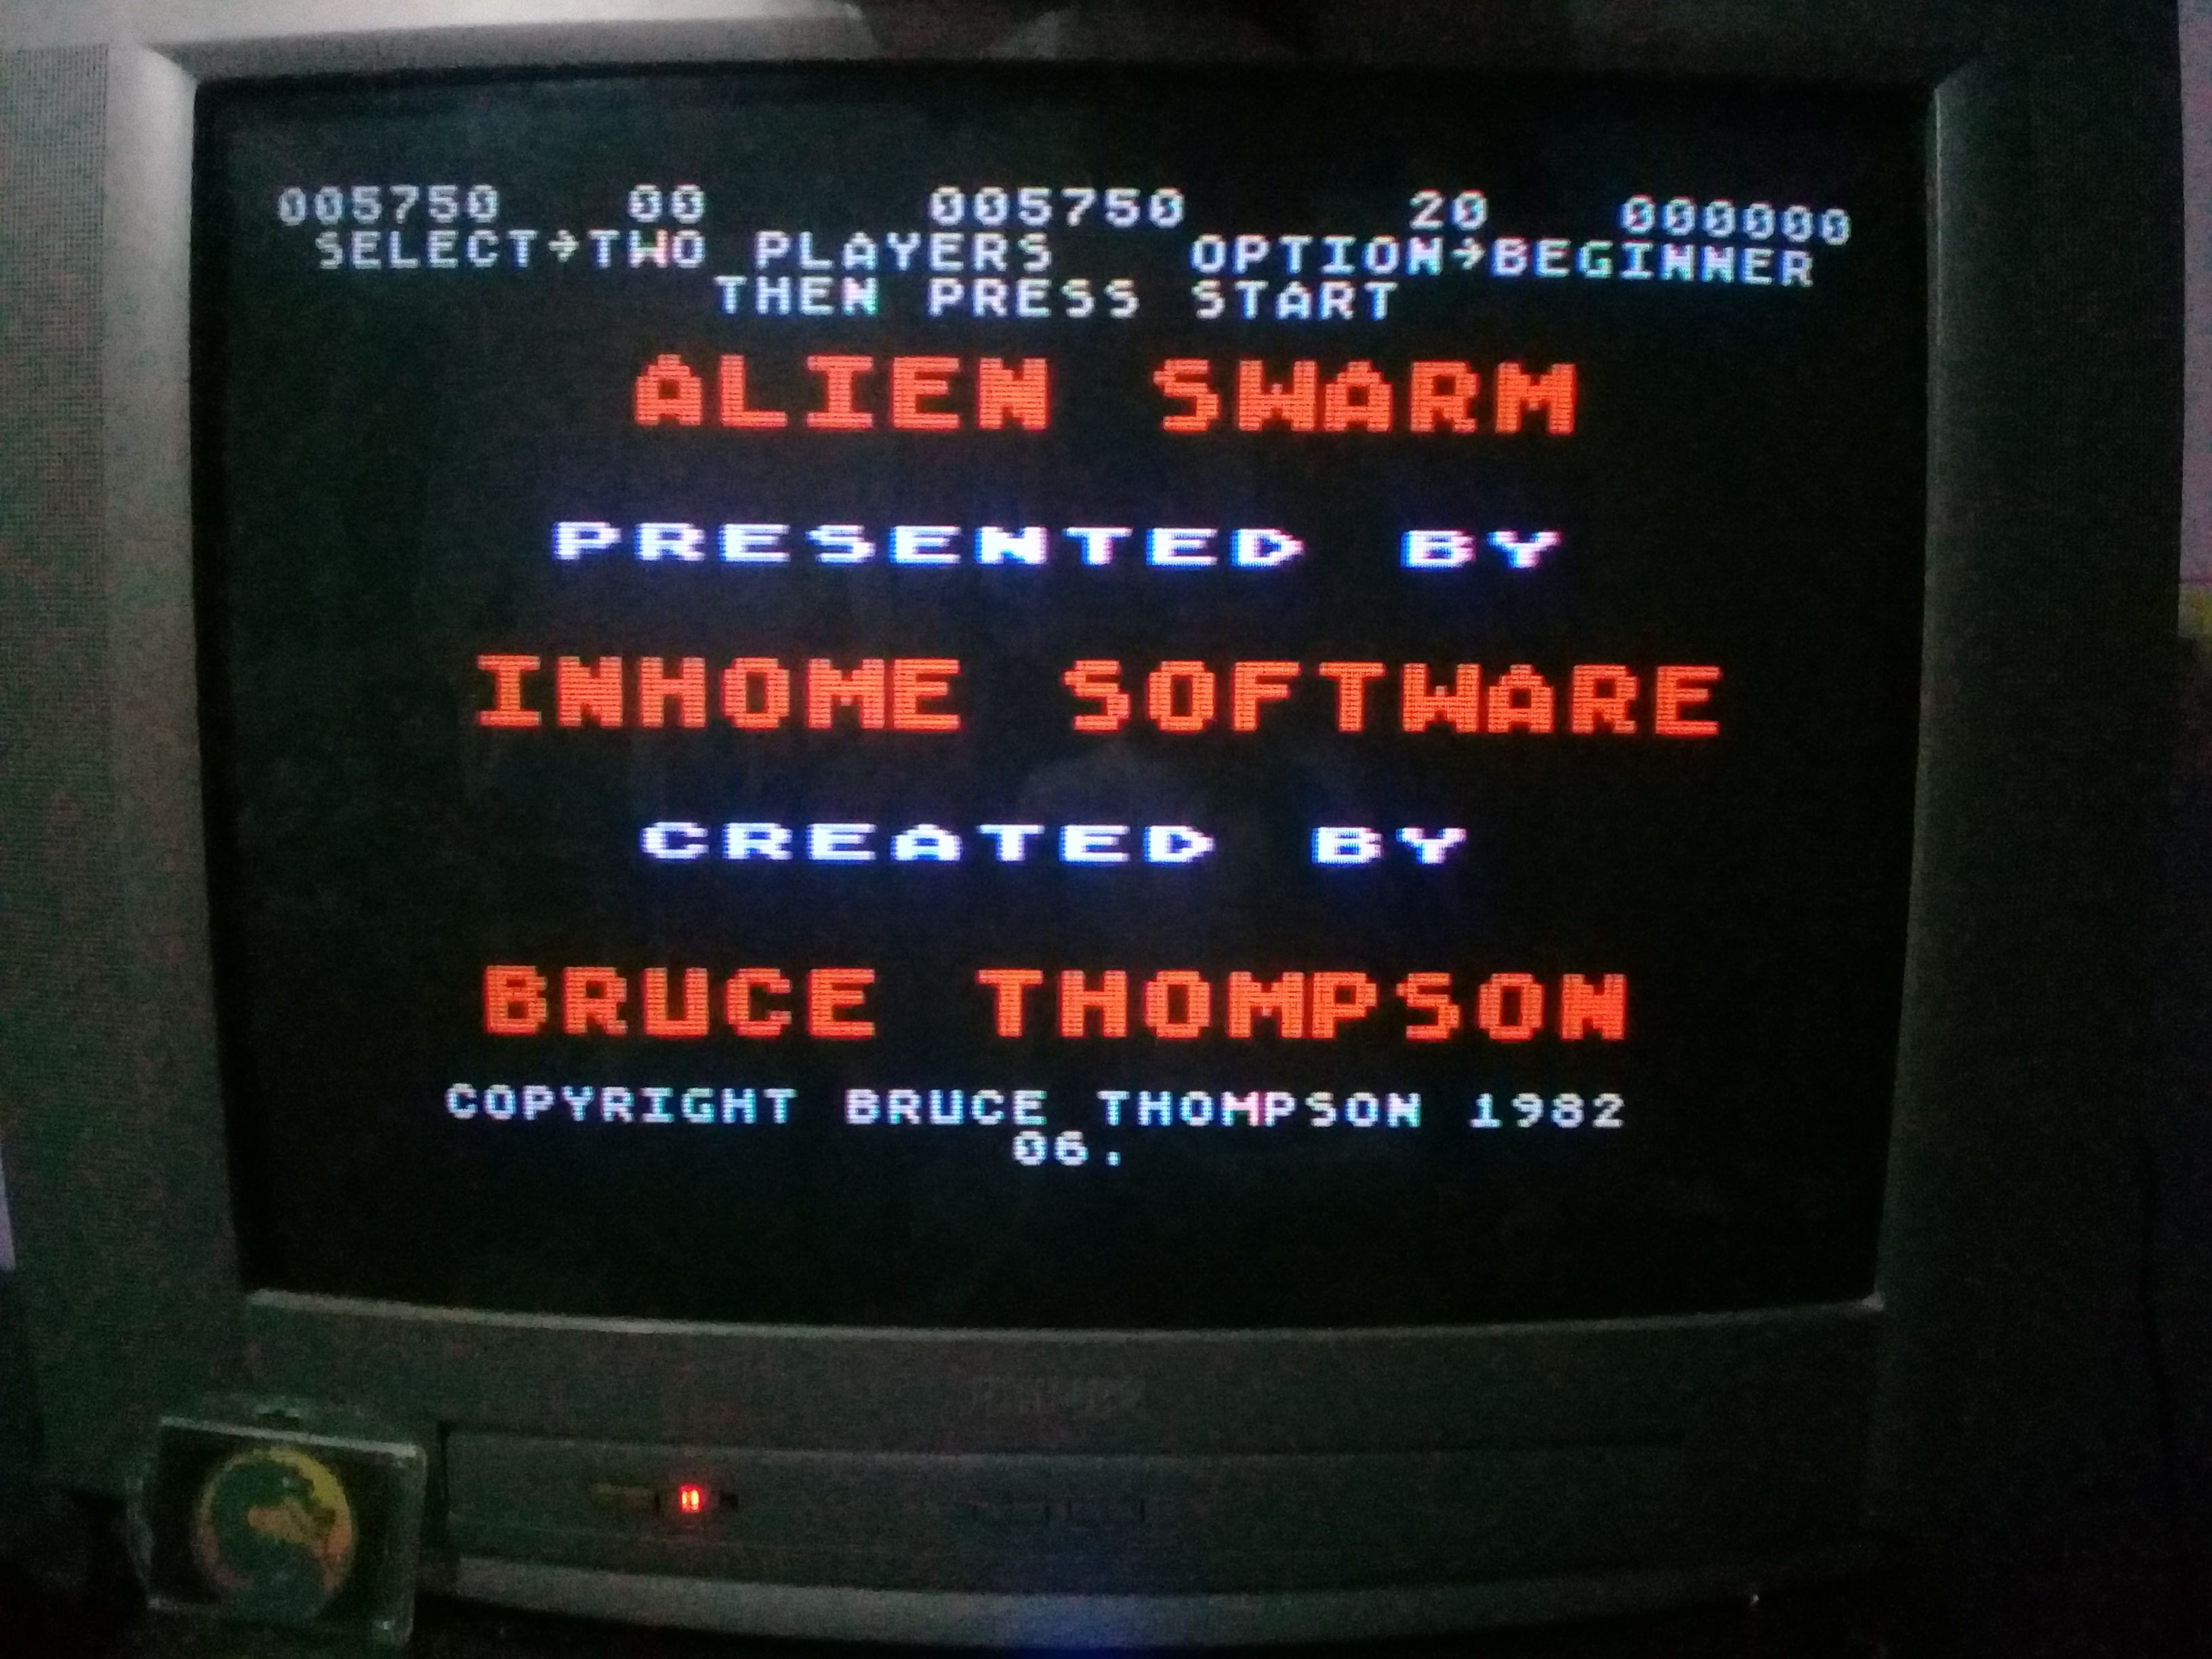 omargeddon: Alien Swarm - Version 6 [Beginner] (Atari 400/800/XL/XE) 5,750 points on 2020-03-12 19:46:05